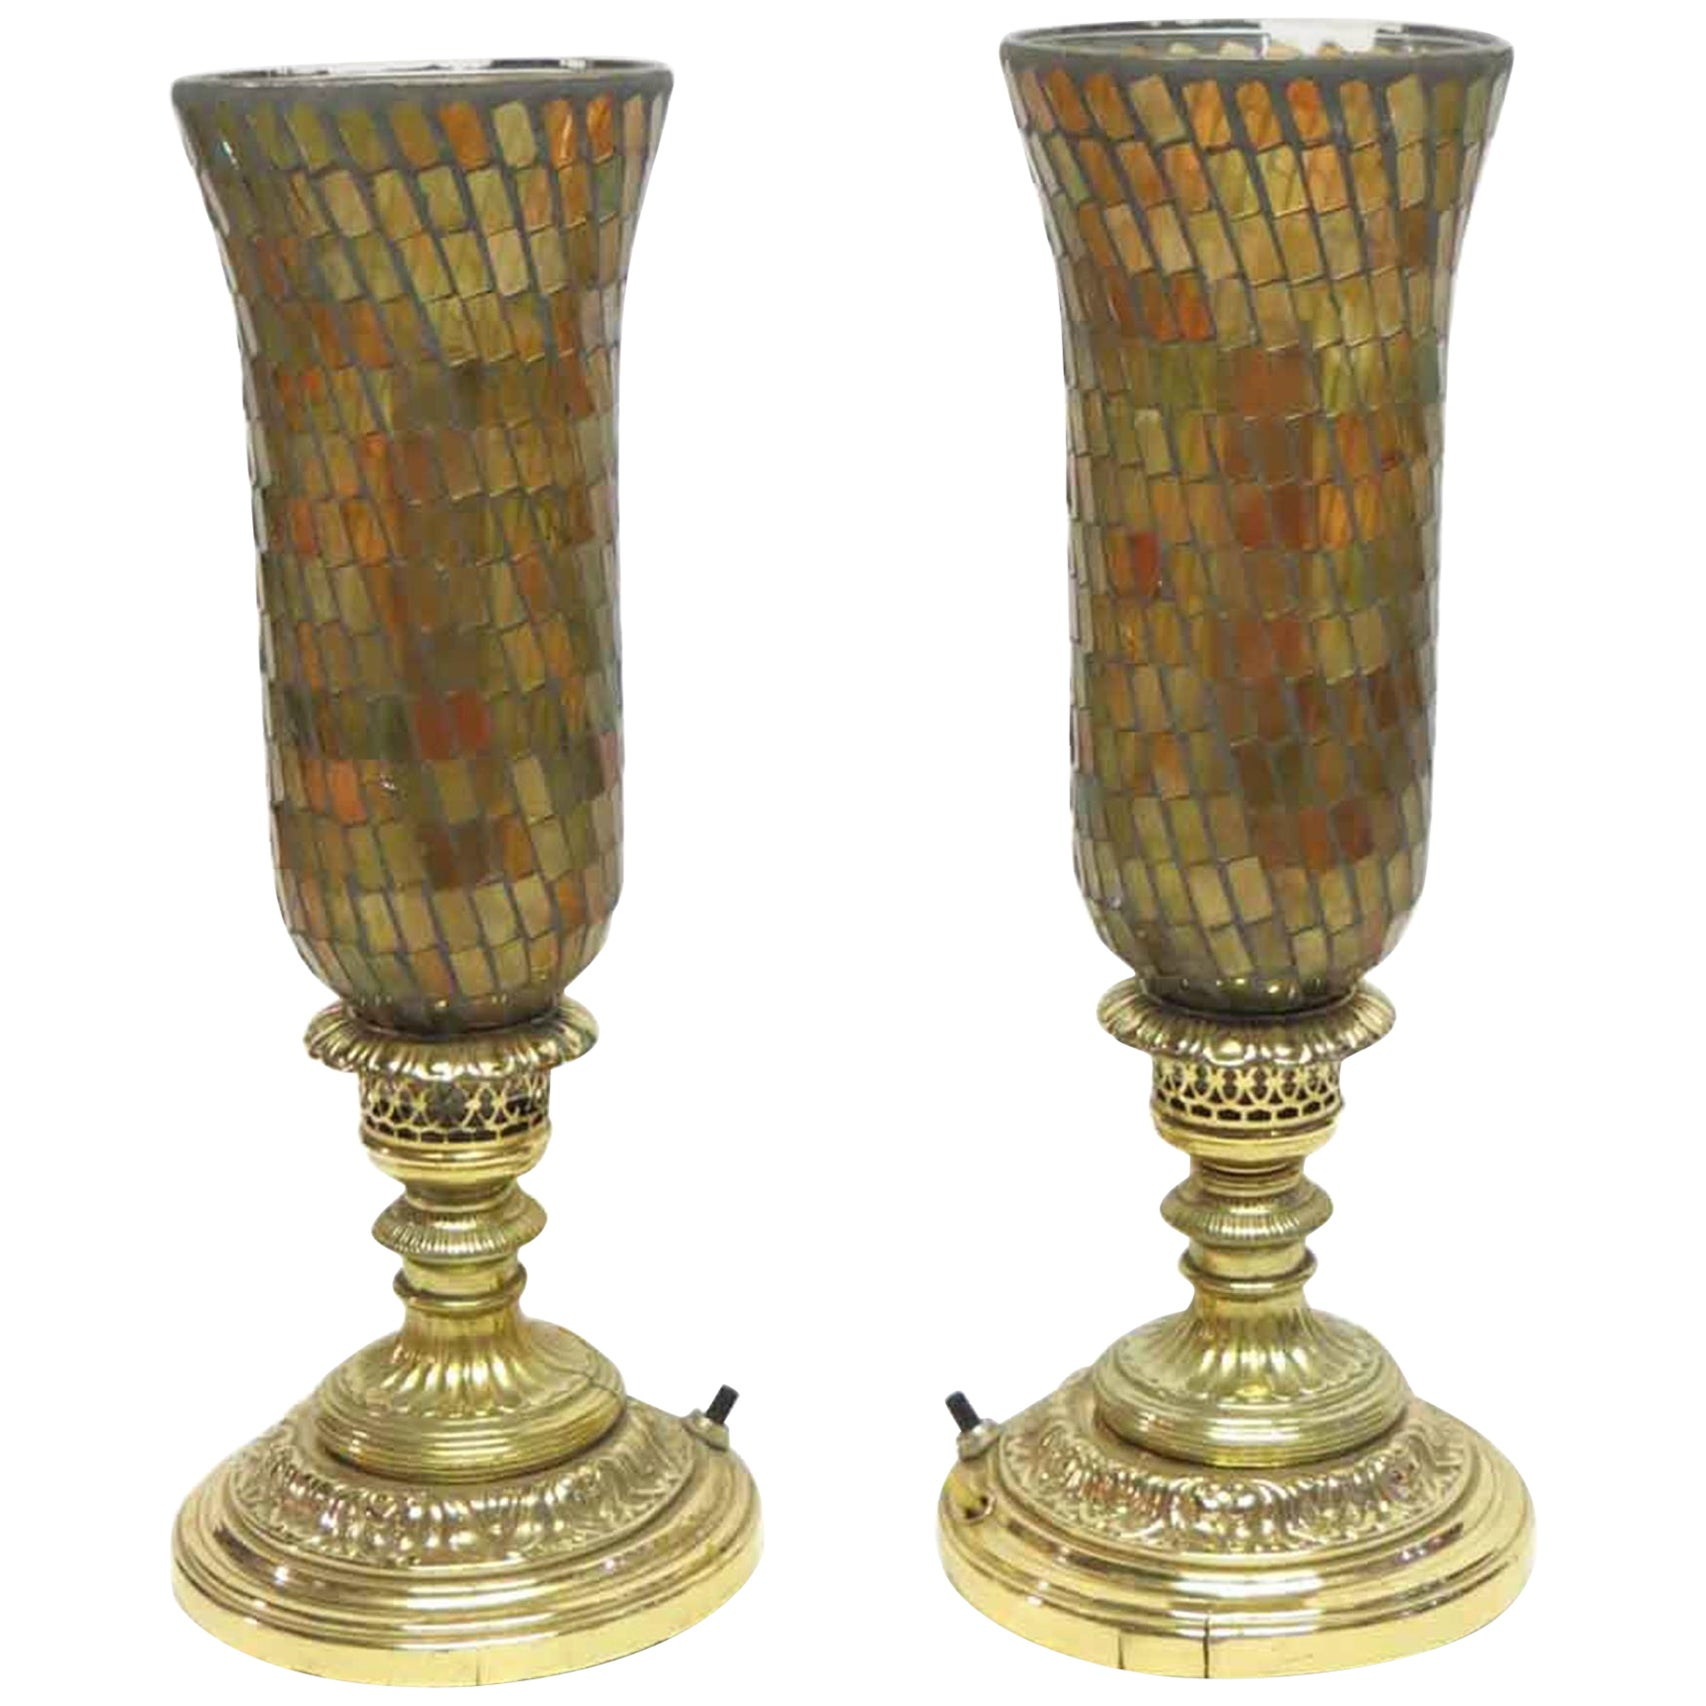 1930s Pair of Hurricane Lamps with Opalescent Colored Glass Shades